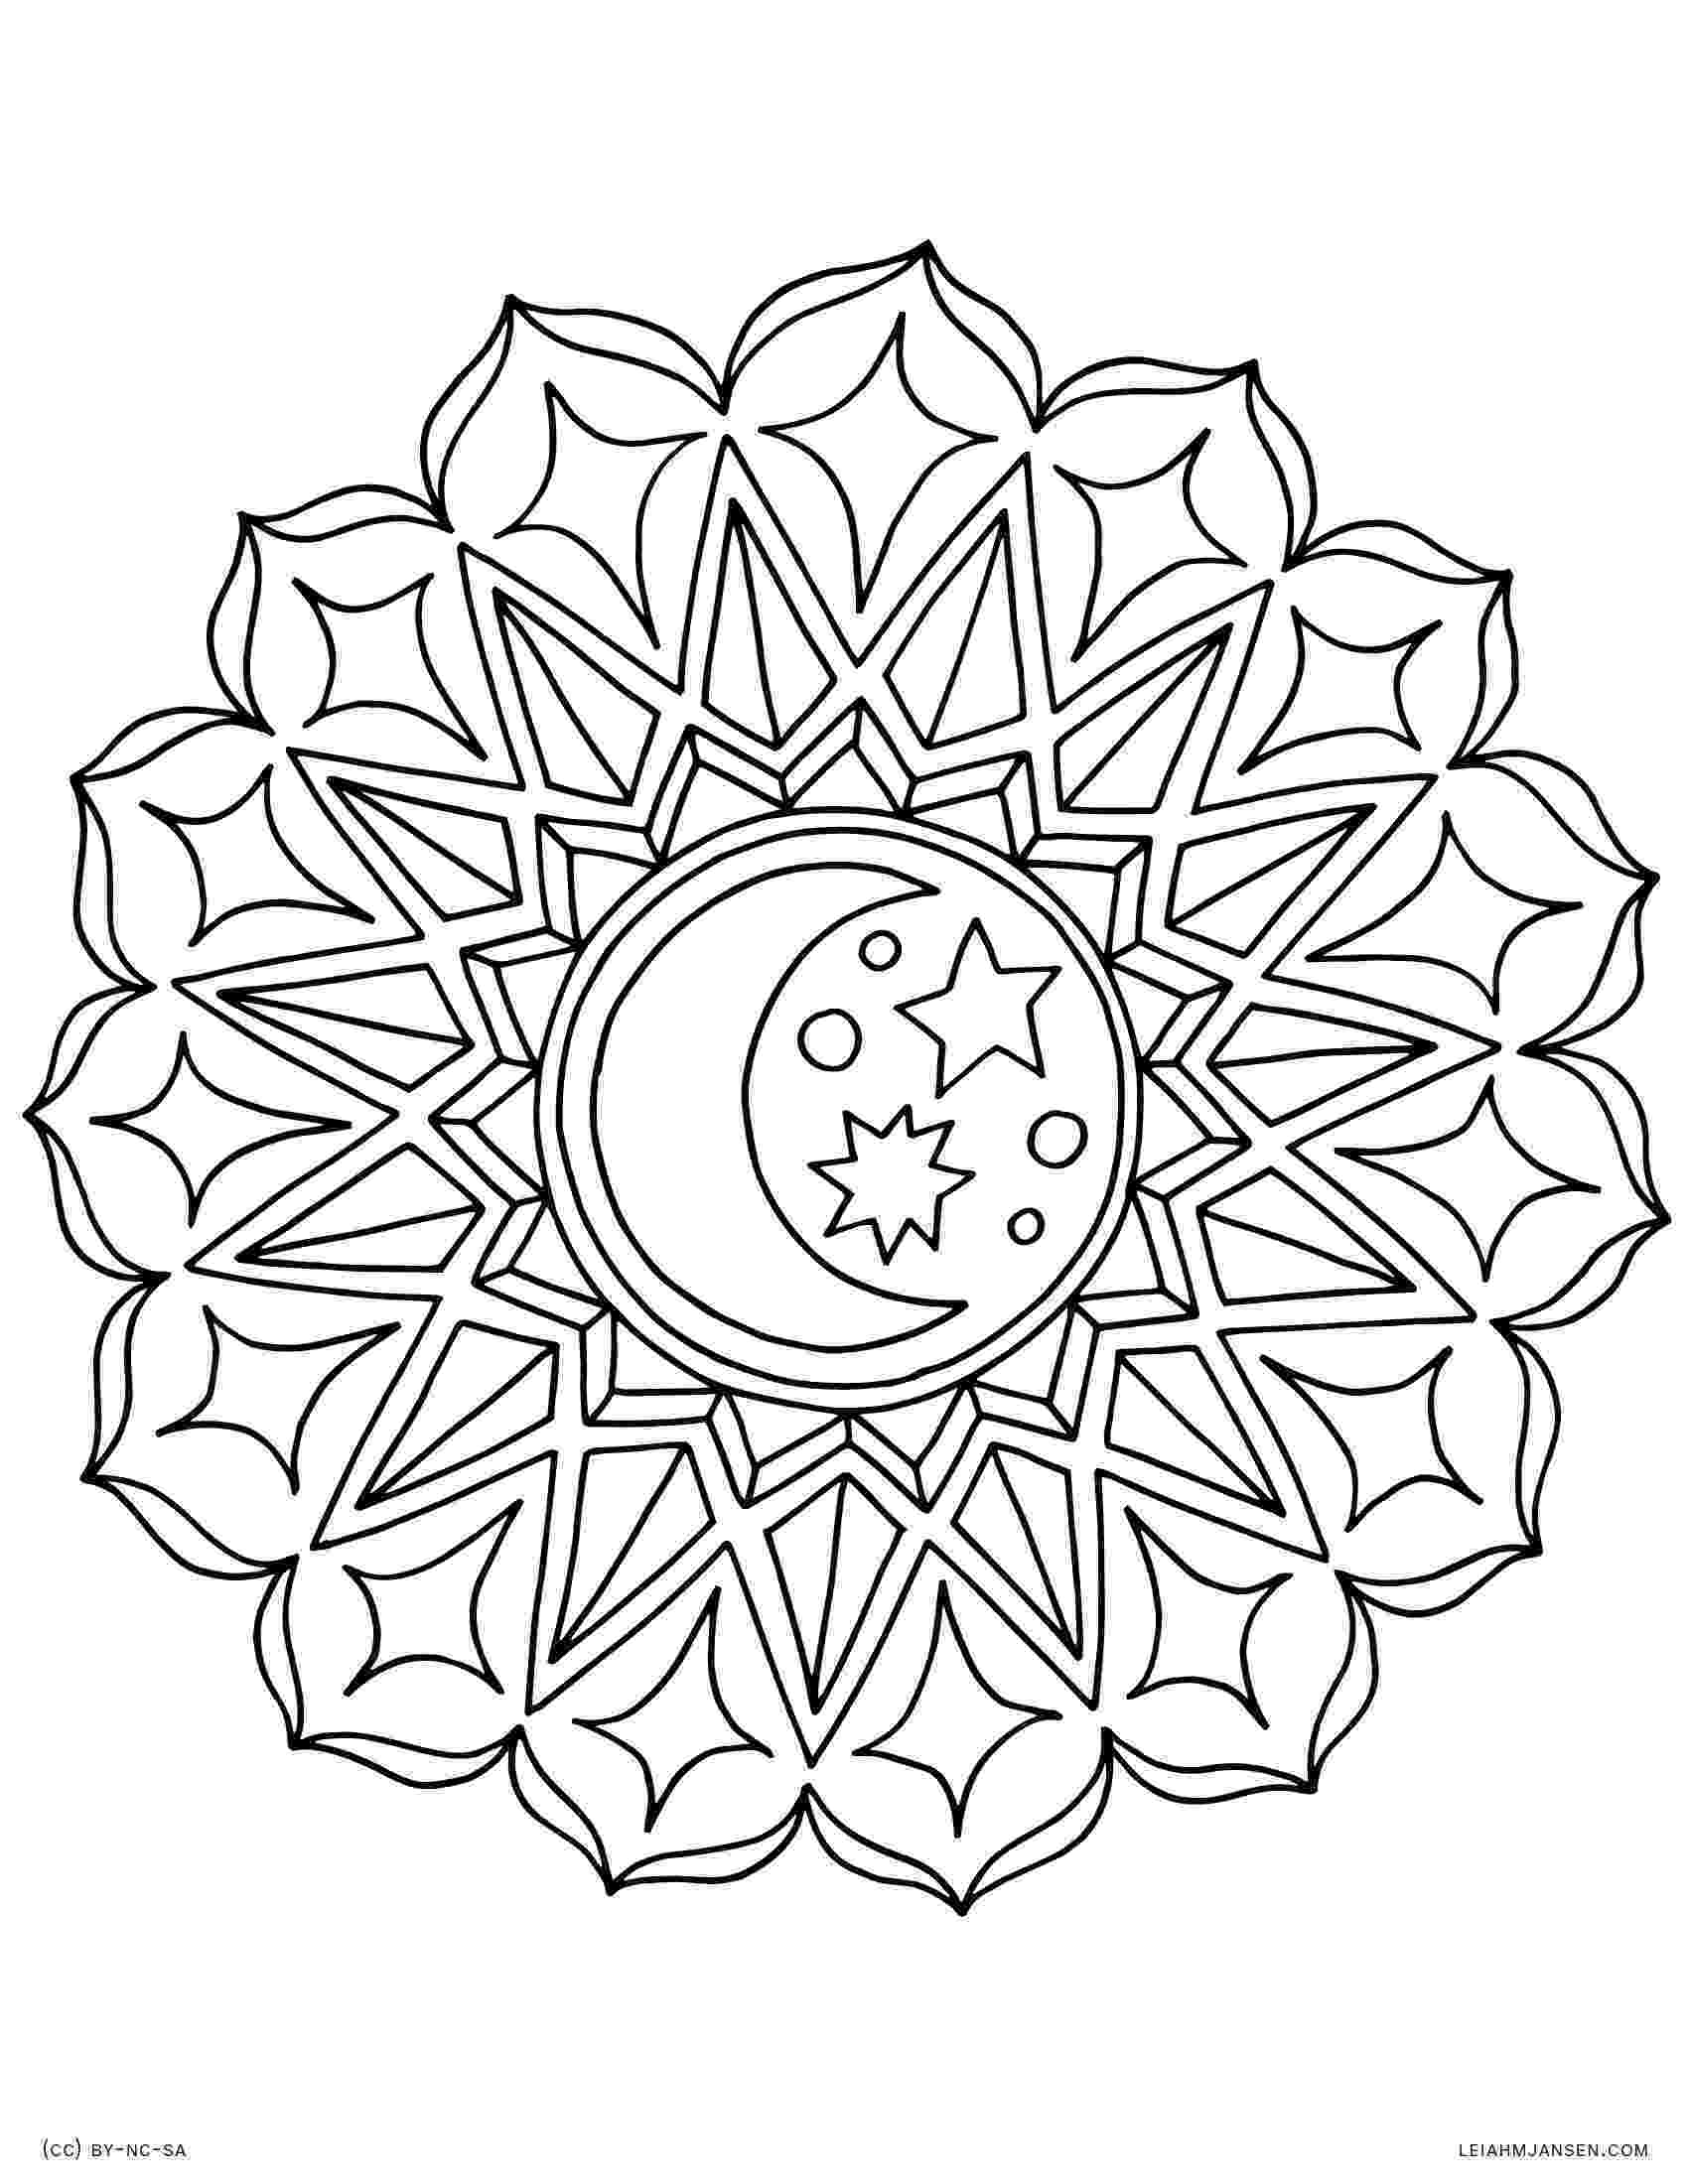 free mandela coloring pages coloring pages coloring mandela free pages